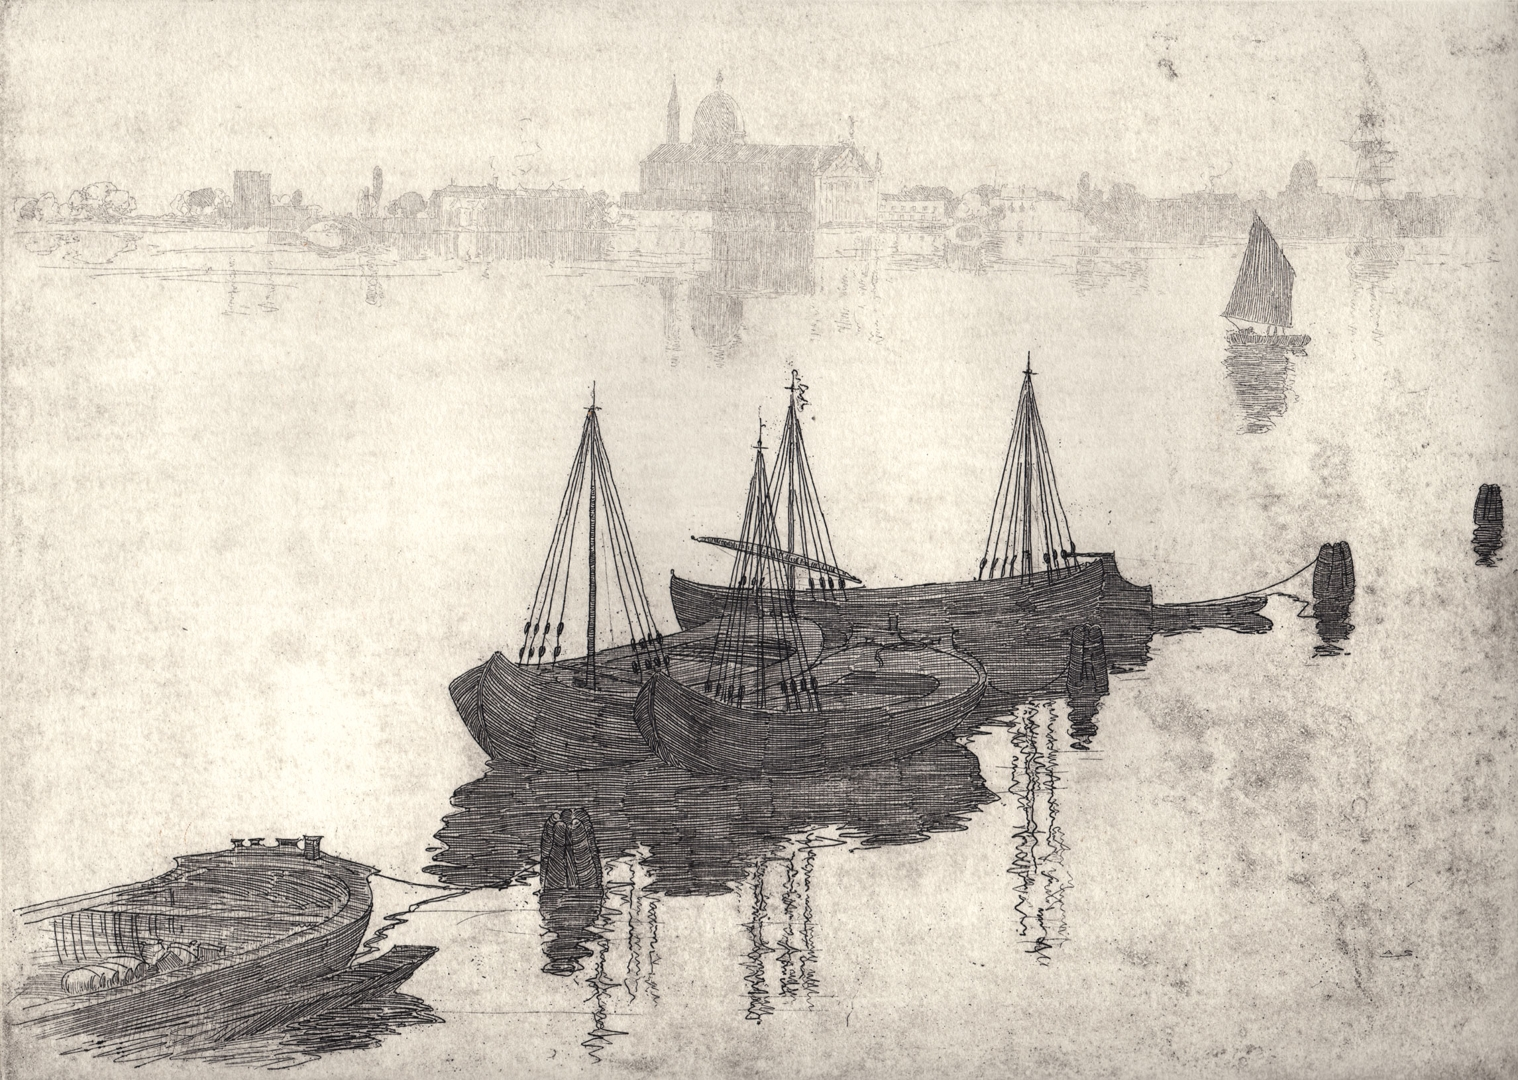 The Lagoon and Barges, Venice by Sir Arthur Streeton.  image